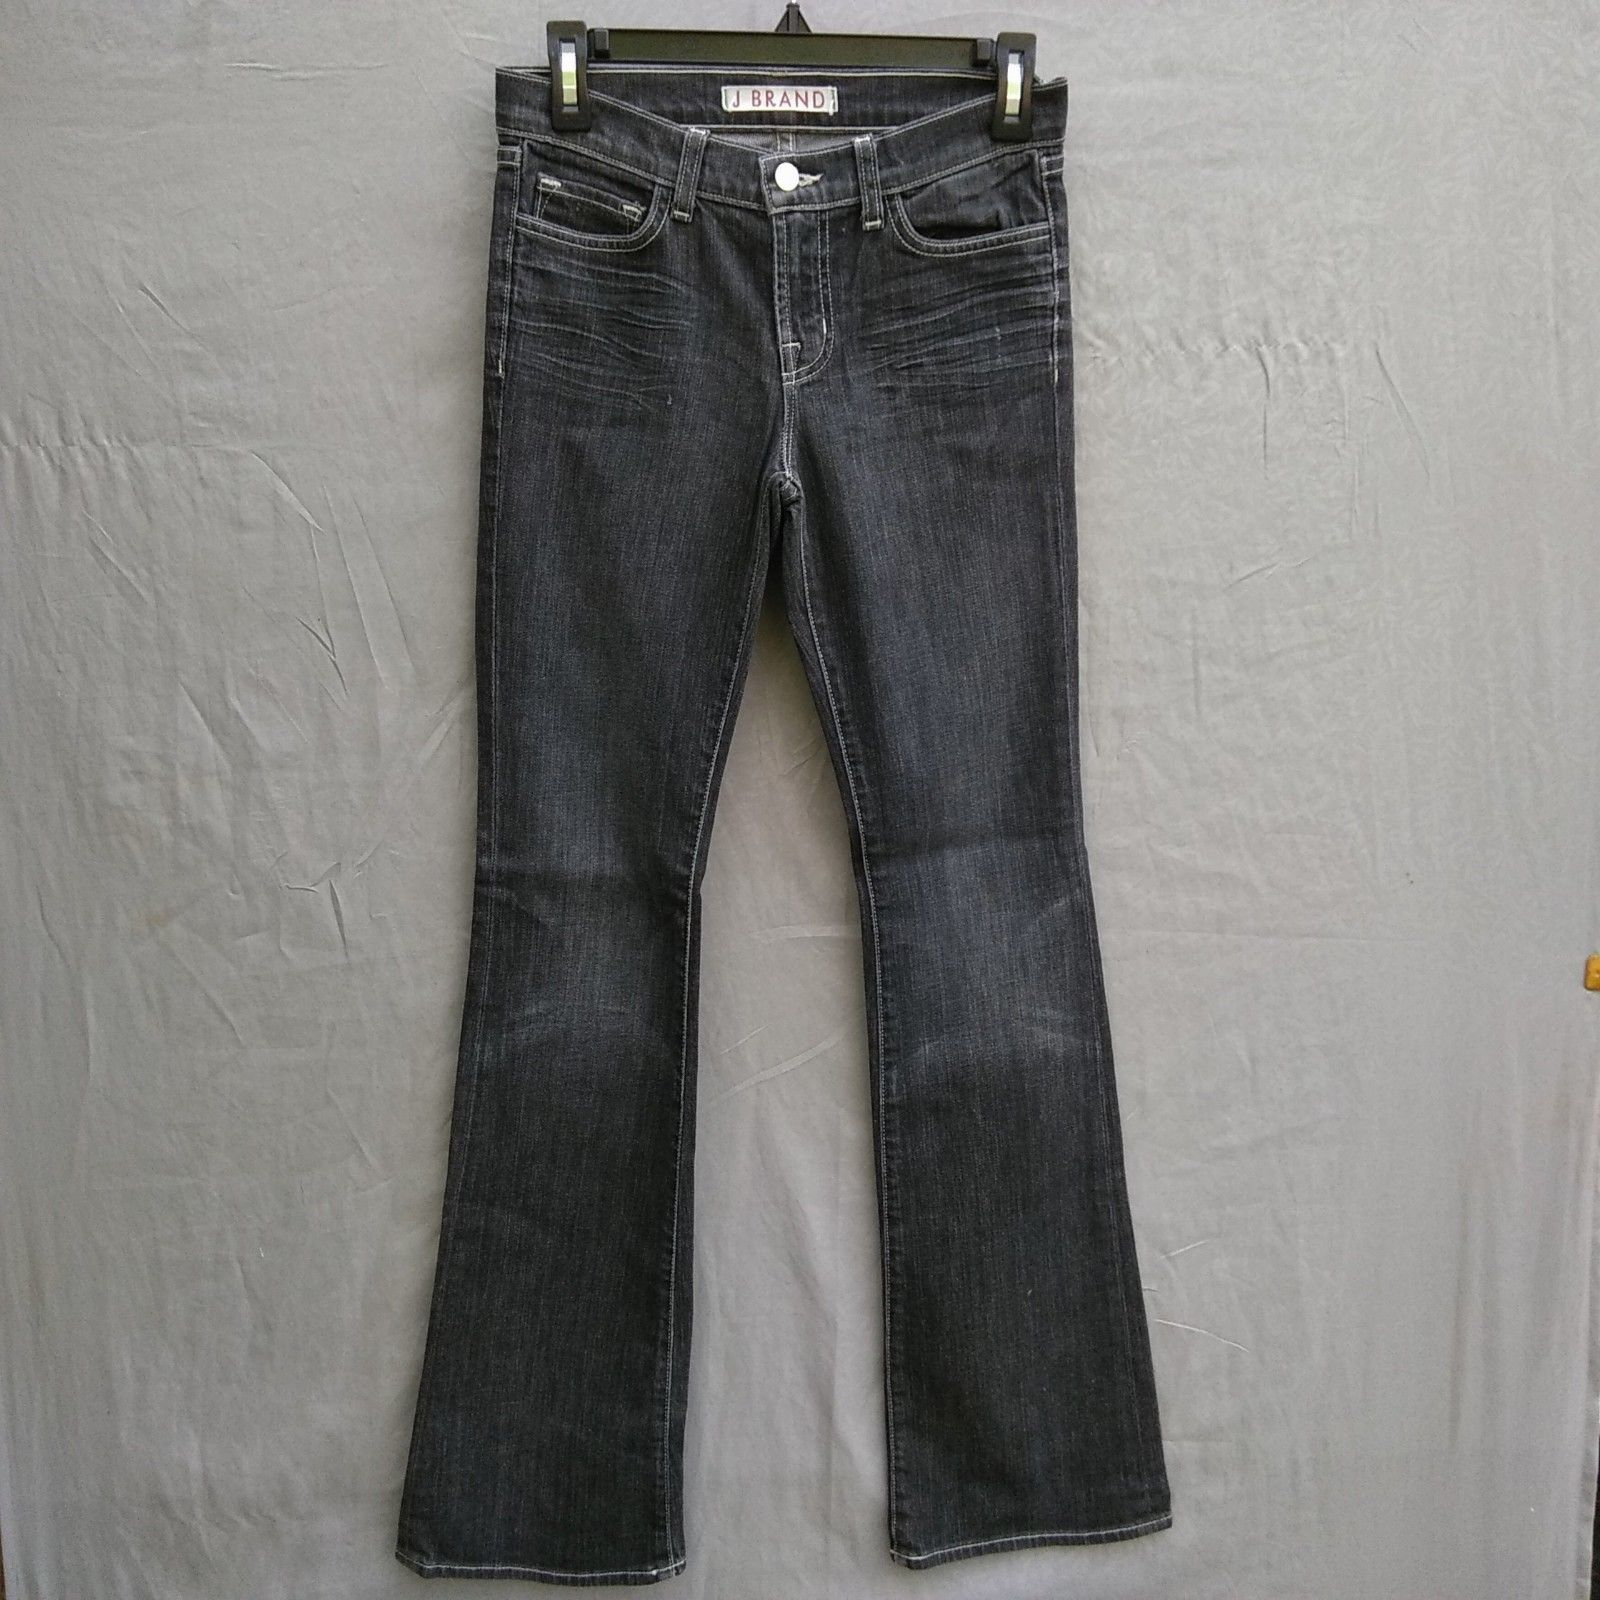 Primary image for J Brand 118 BootCut Womens Jeans Size 26 Black